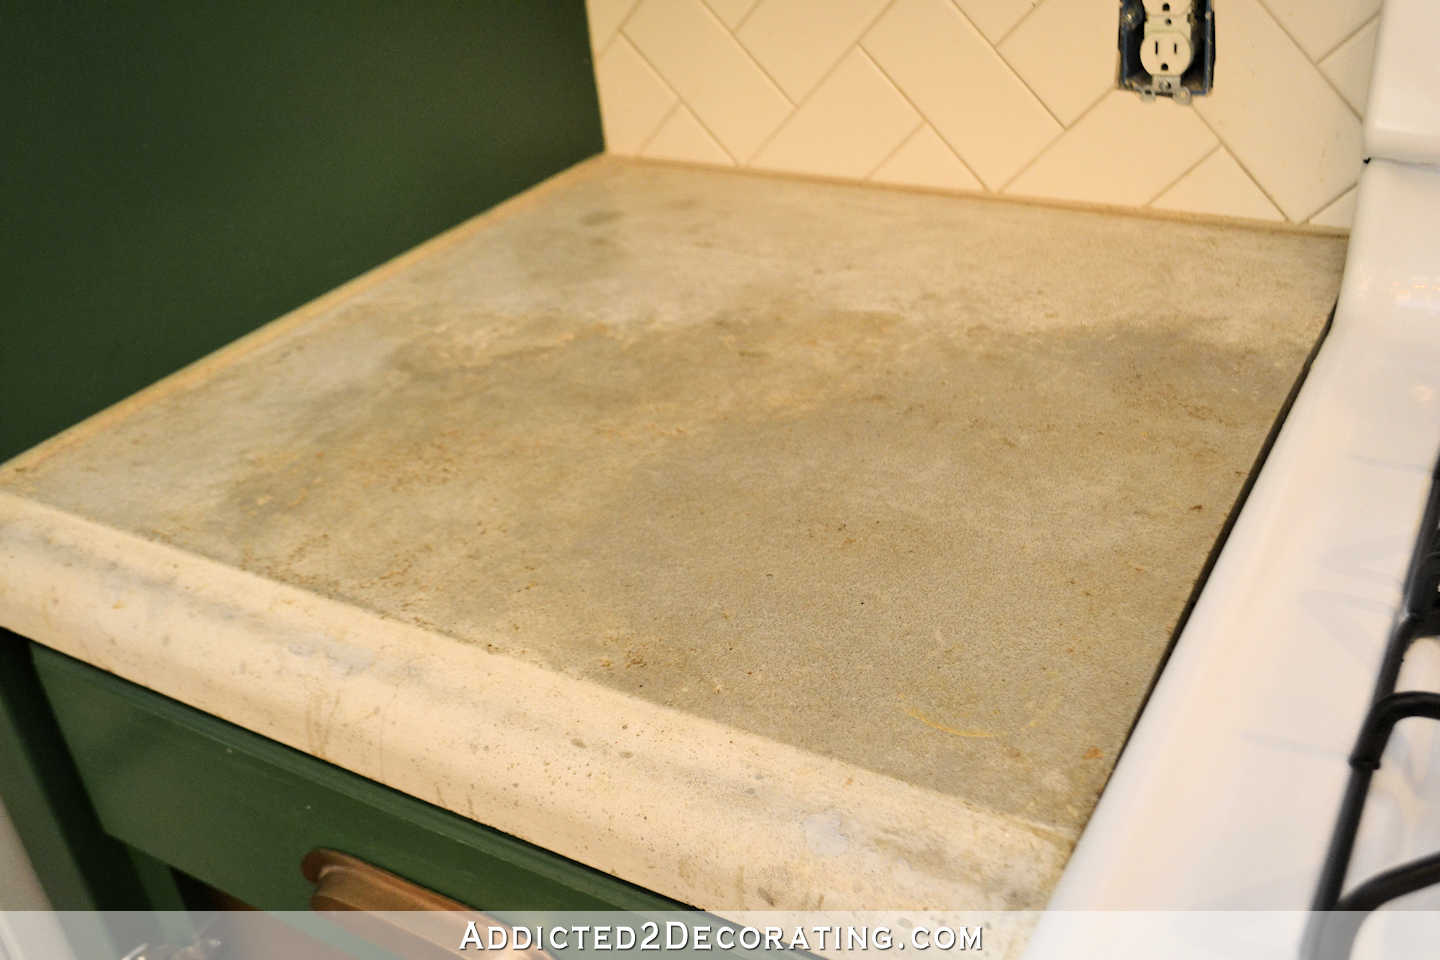 refinishing kitchen countertops accessories my concrete – part 1